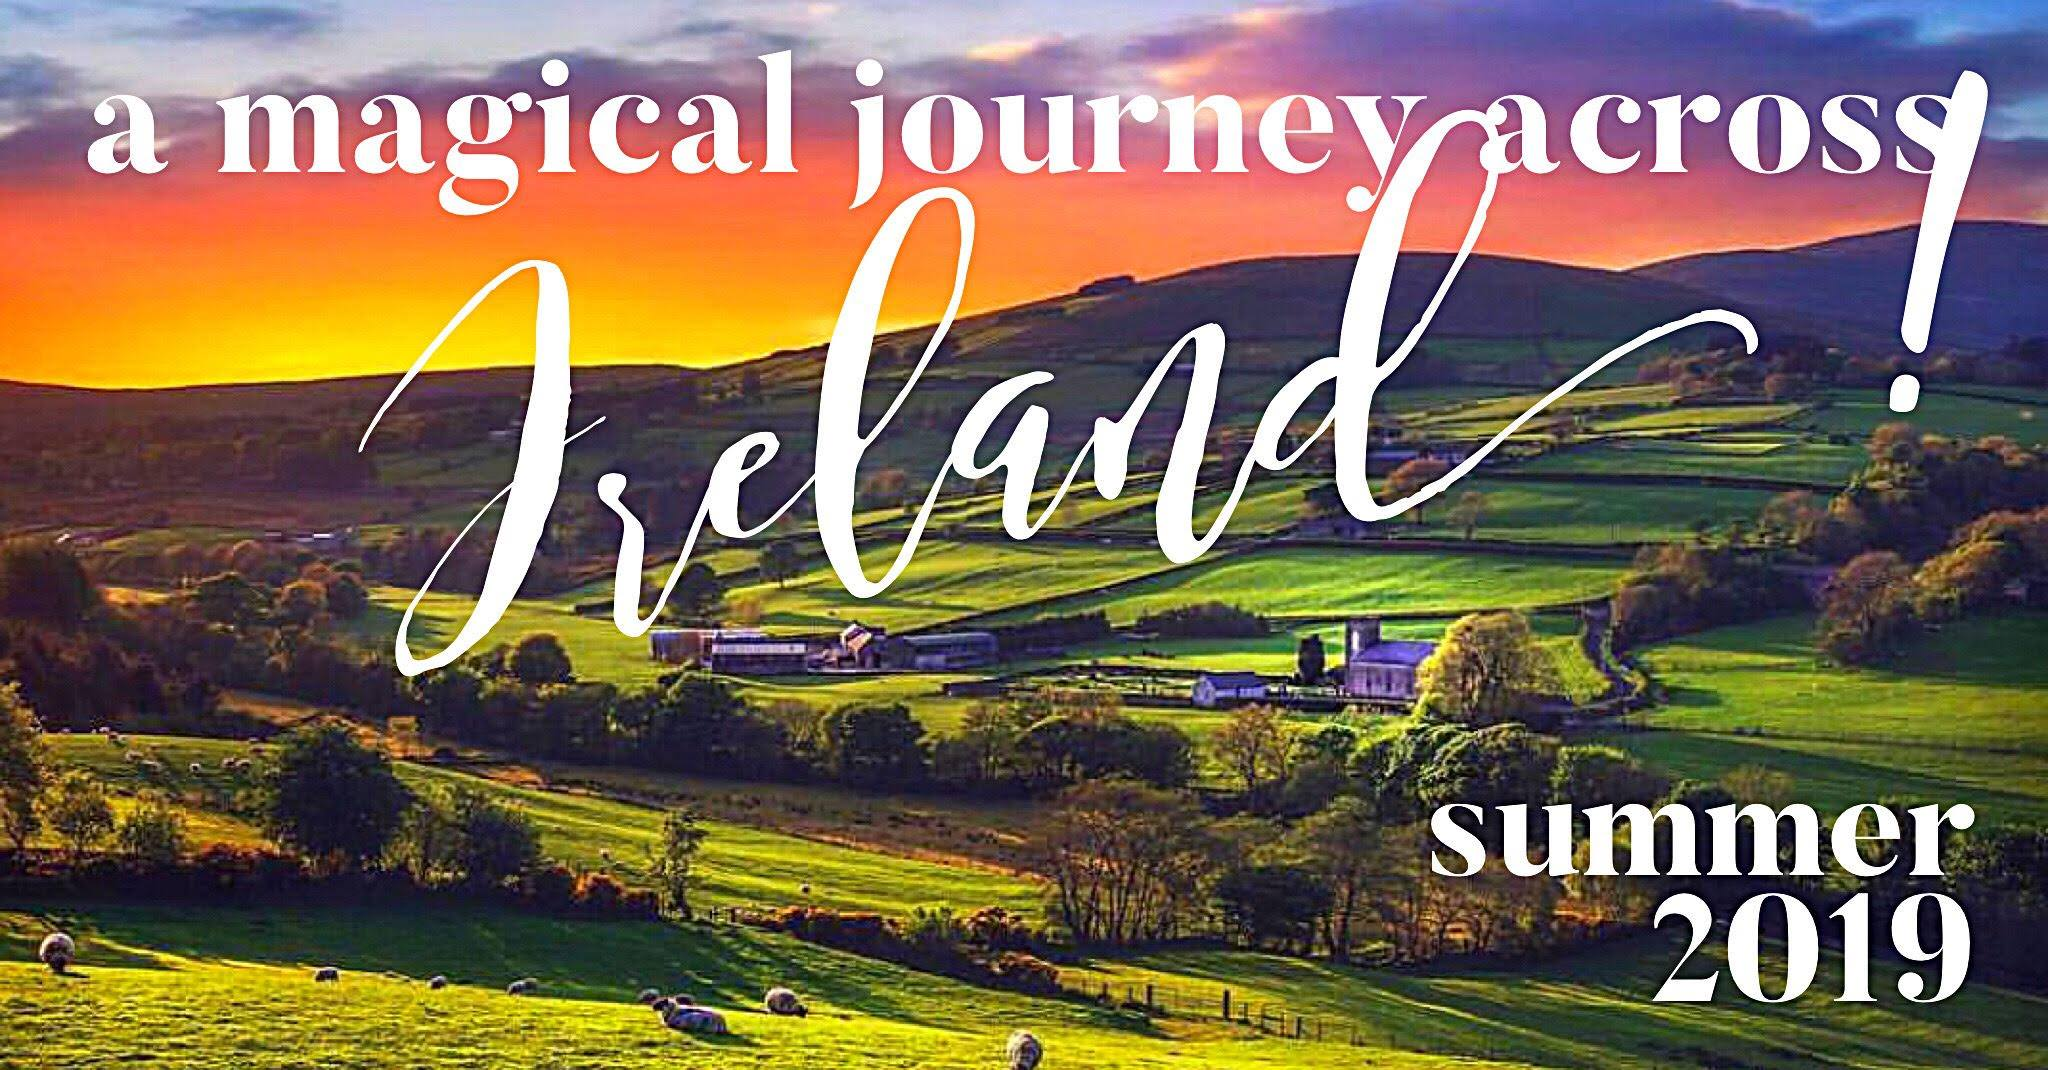 SOLD OUT-2 seats available. We love Ireland. We love the pace, the beauty, the magic...the timelessness. Wont you join us?  Aug 21 at 11 AM – Aug 29 2019 at 2 PM